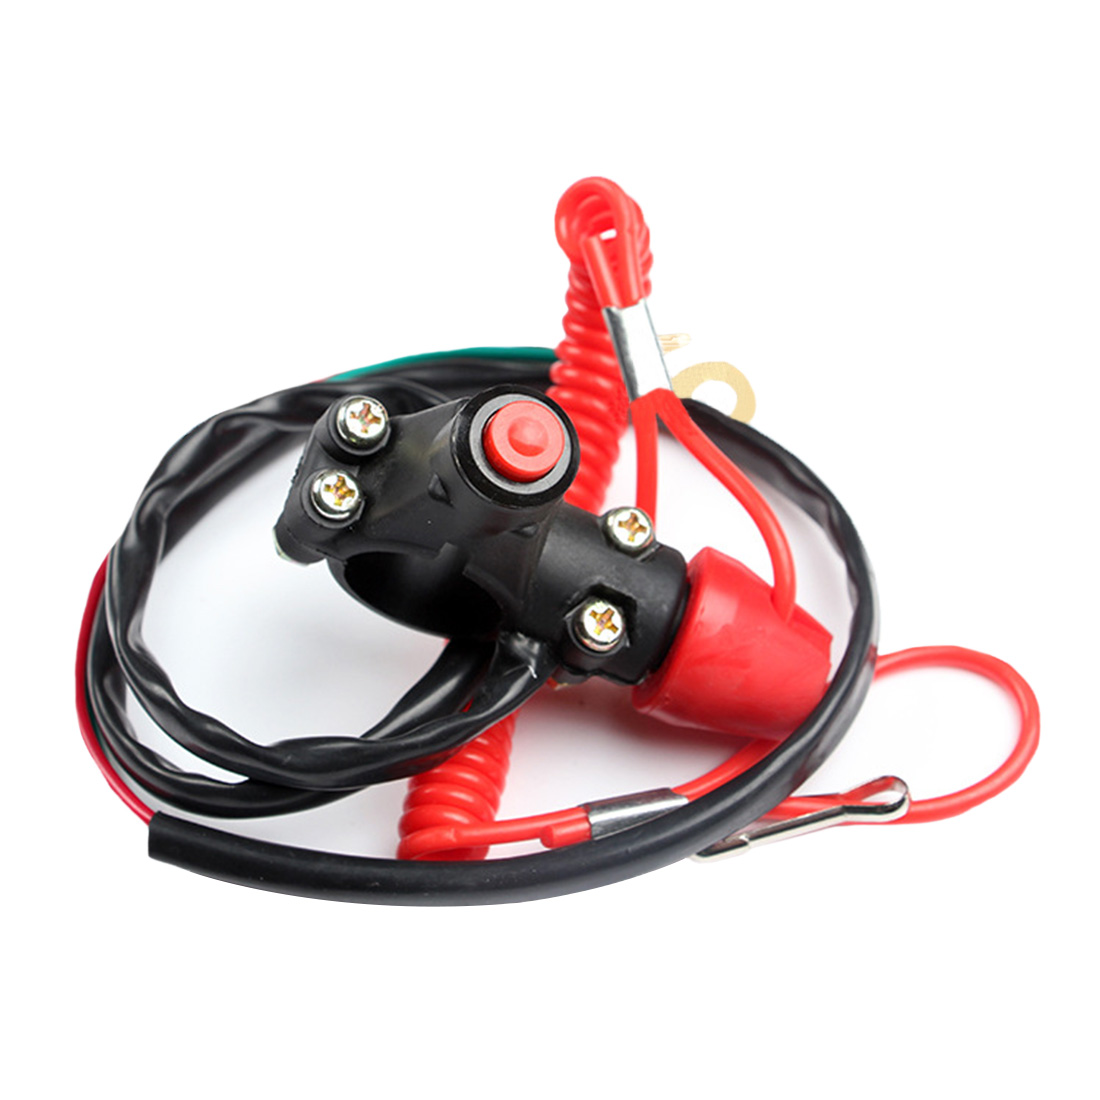 On Off Start Kill Switch Motorcycle Universal Outboard ATV Stop Motor Safety Lanyard Emergency